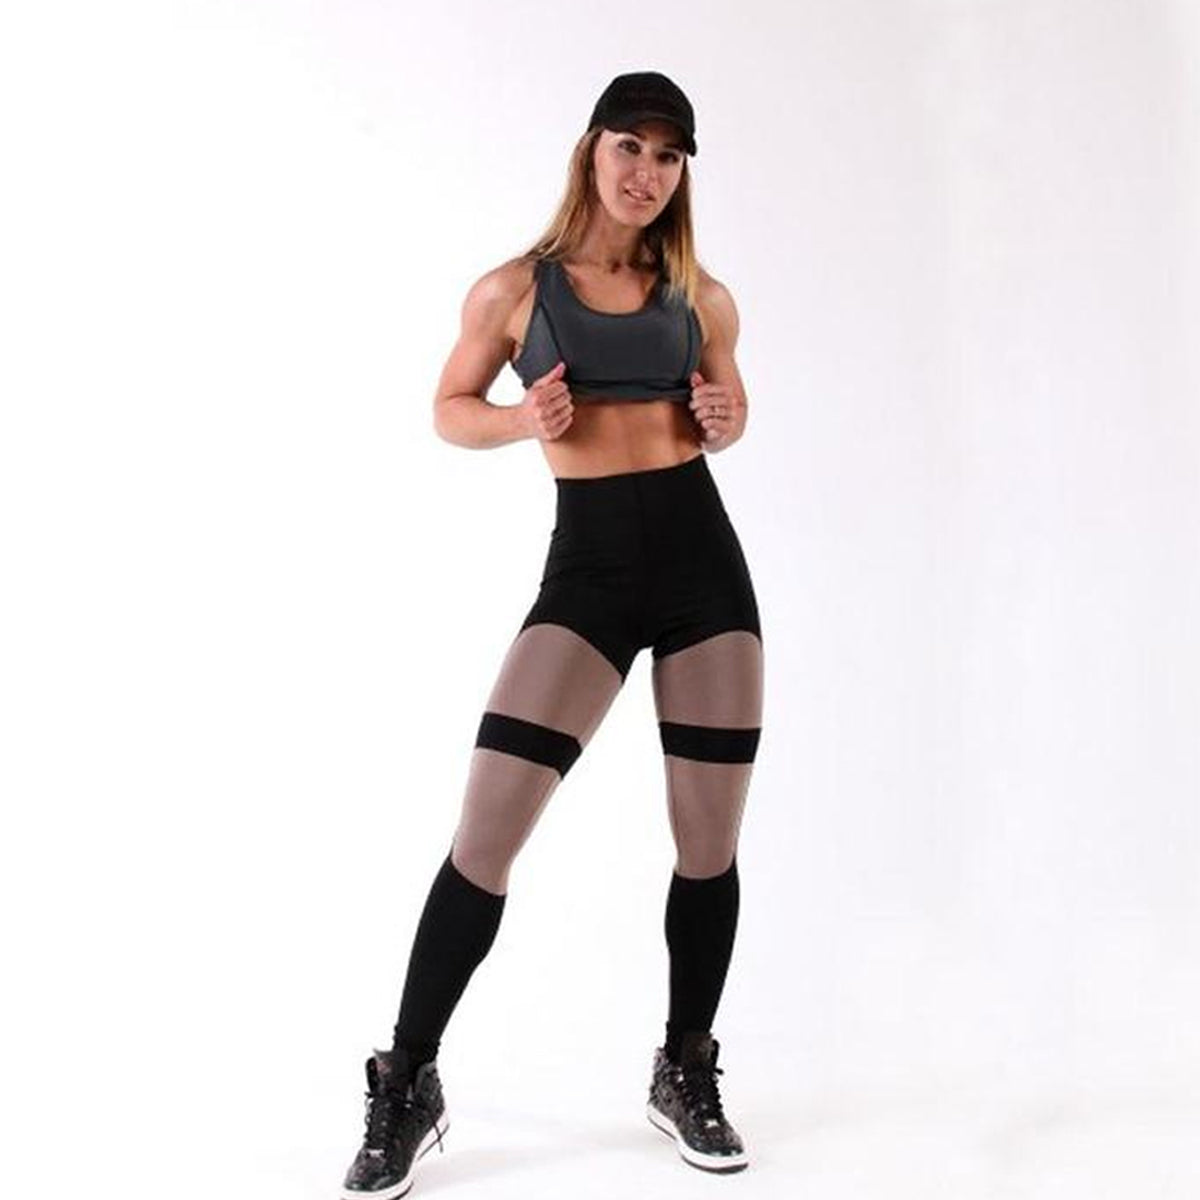 Soft Skin-Friendly Elastic Spandex High-Waist Fitness Leggings